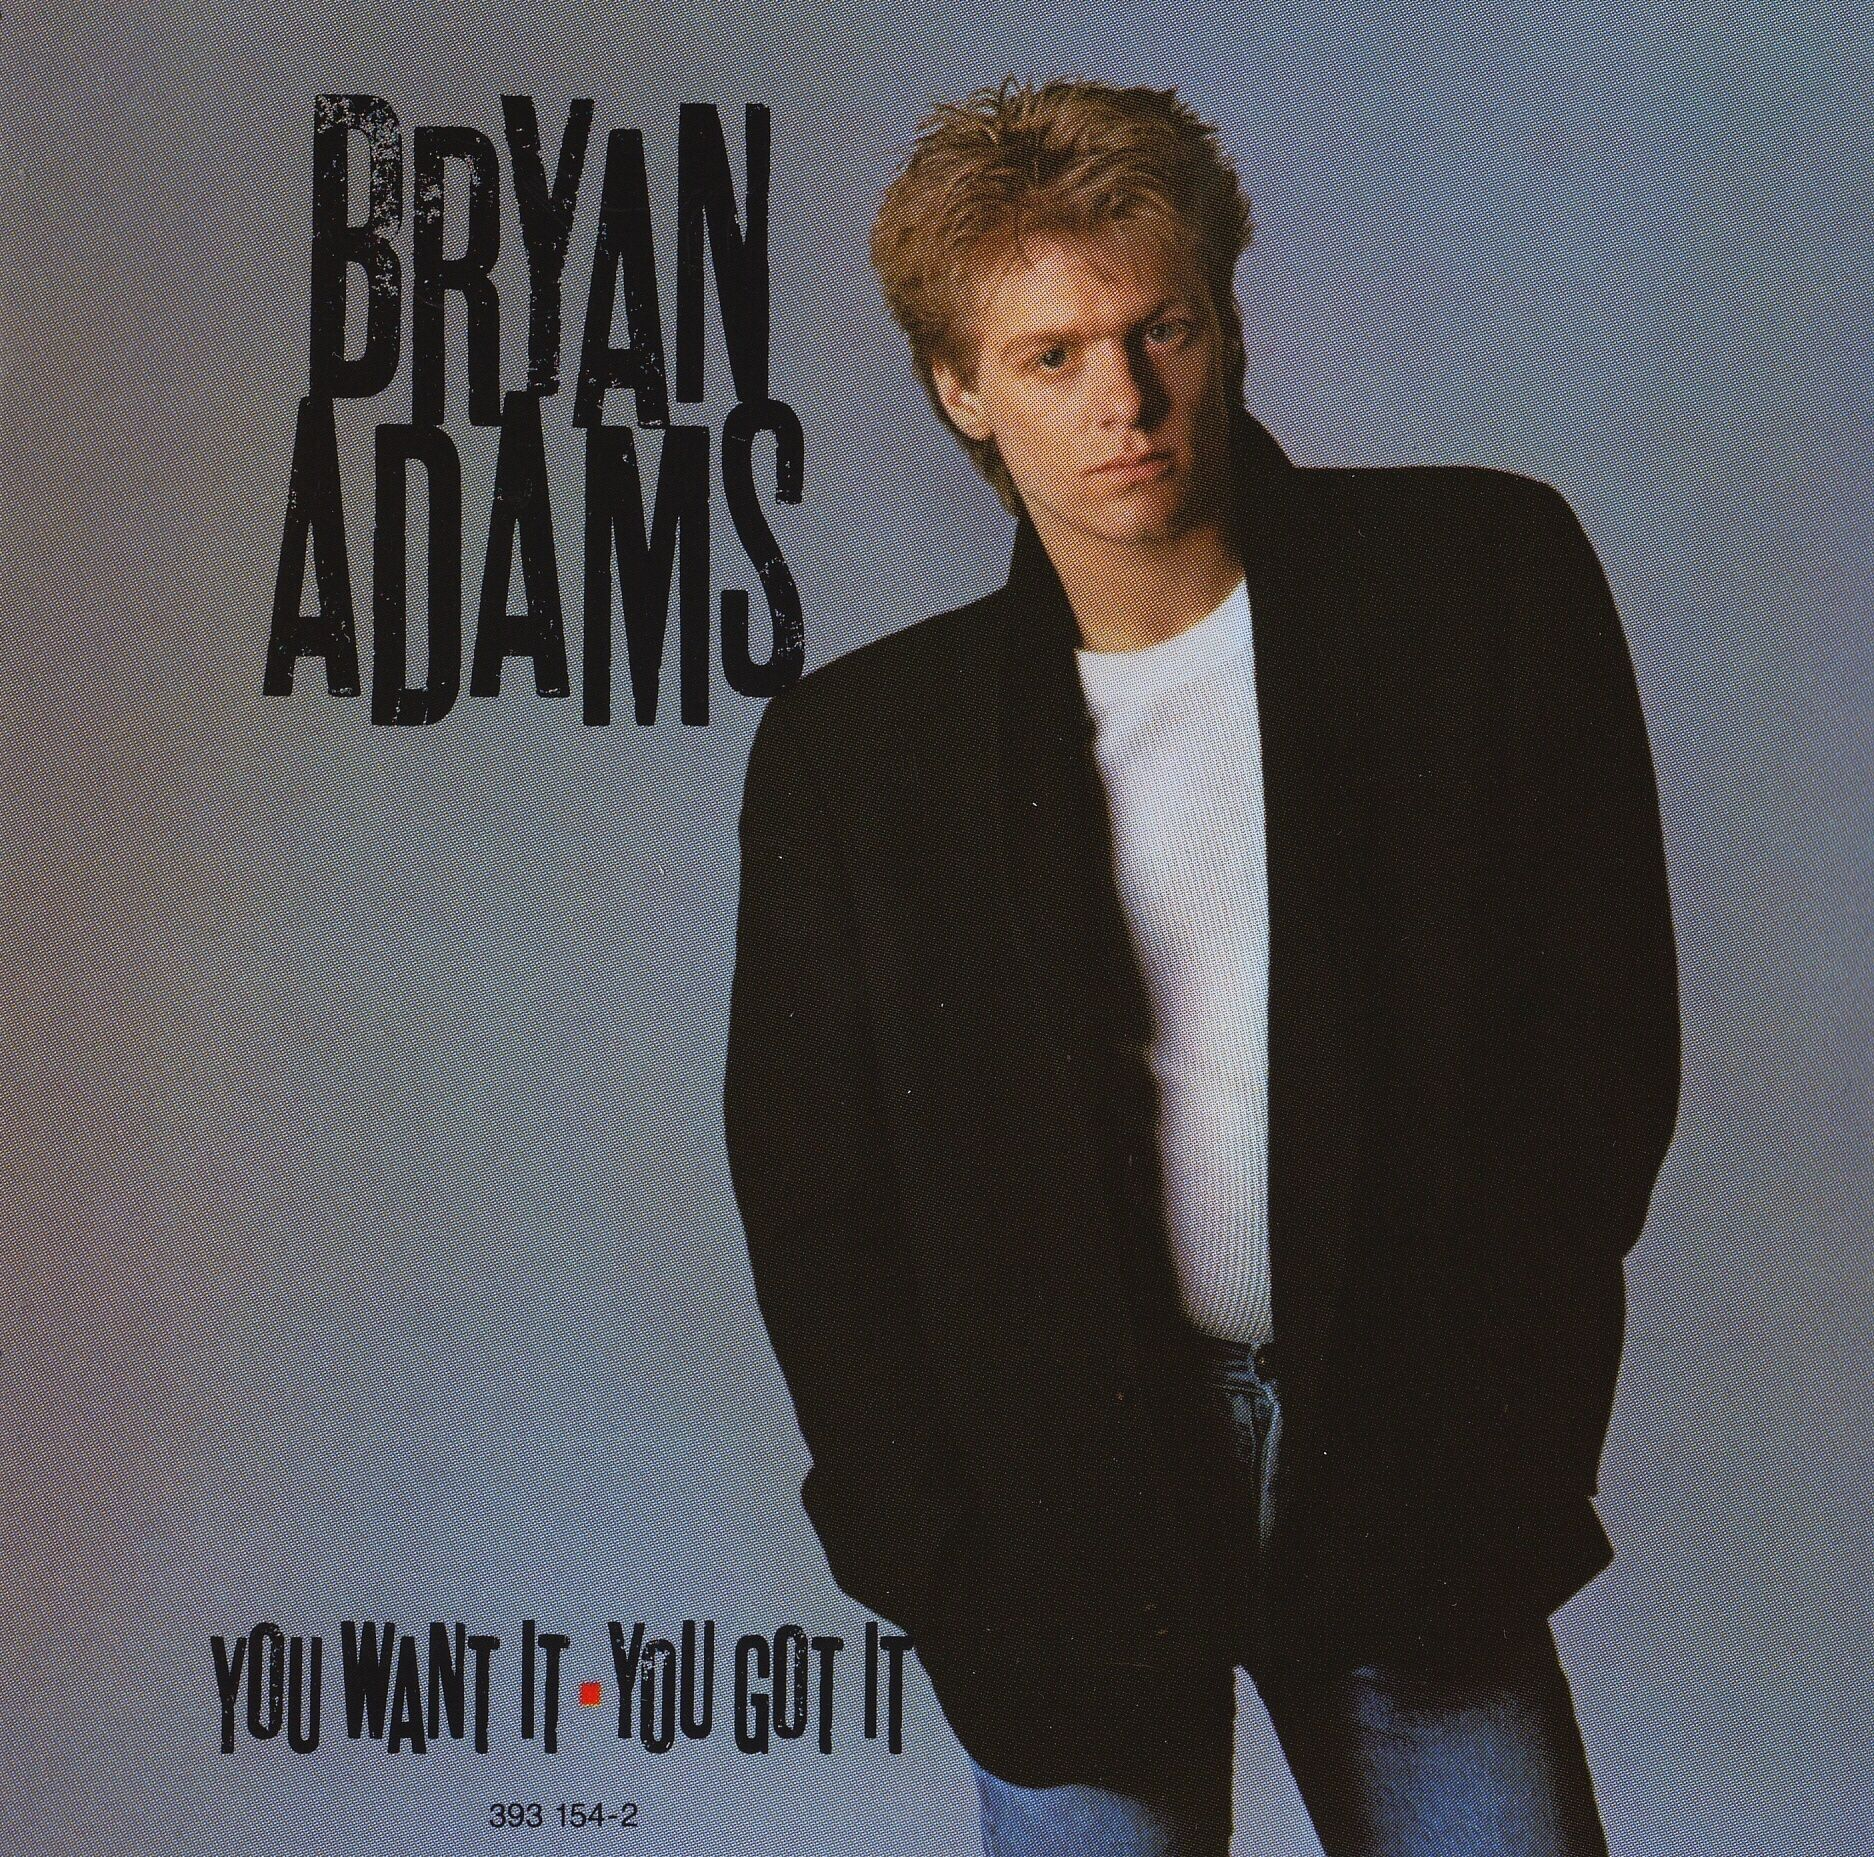 Checkout This Photo From The Bryanadams App 80s Music 1980s